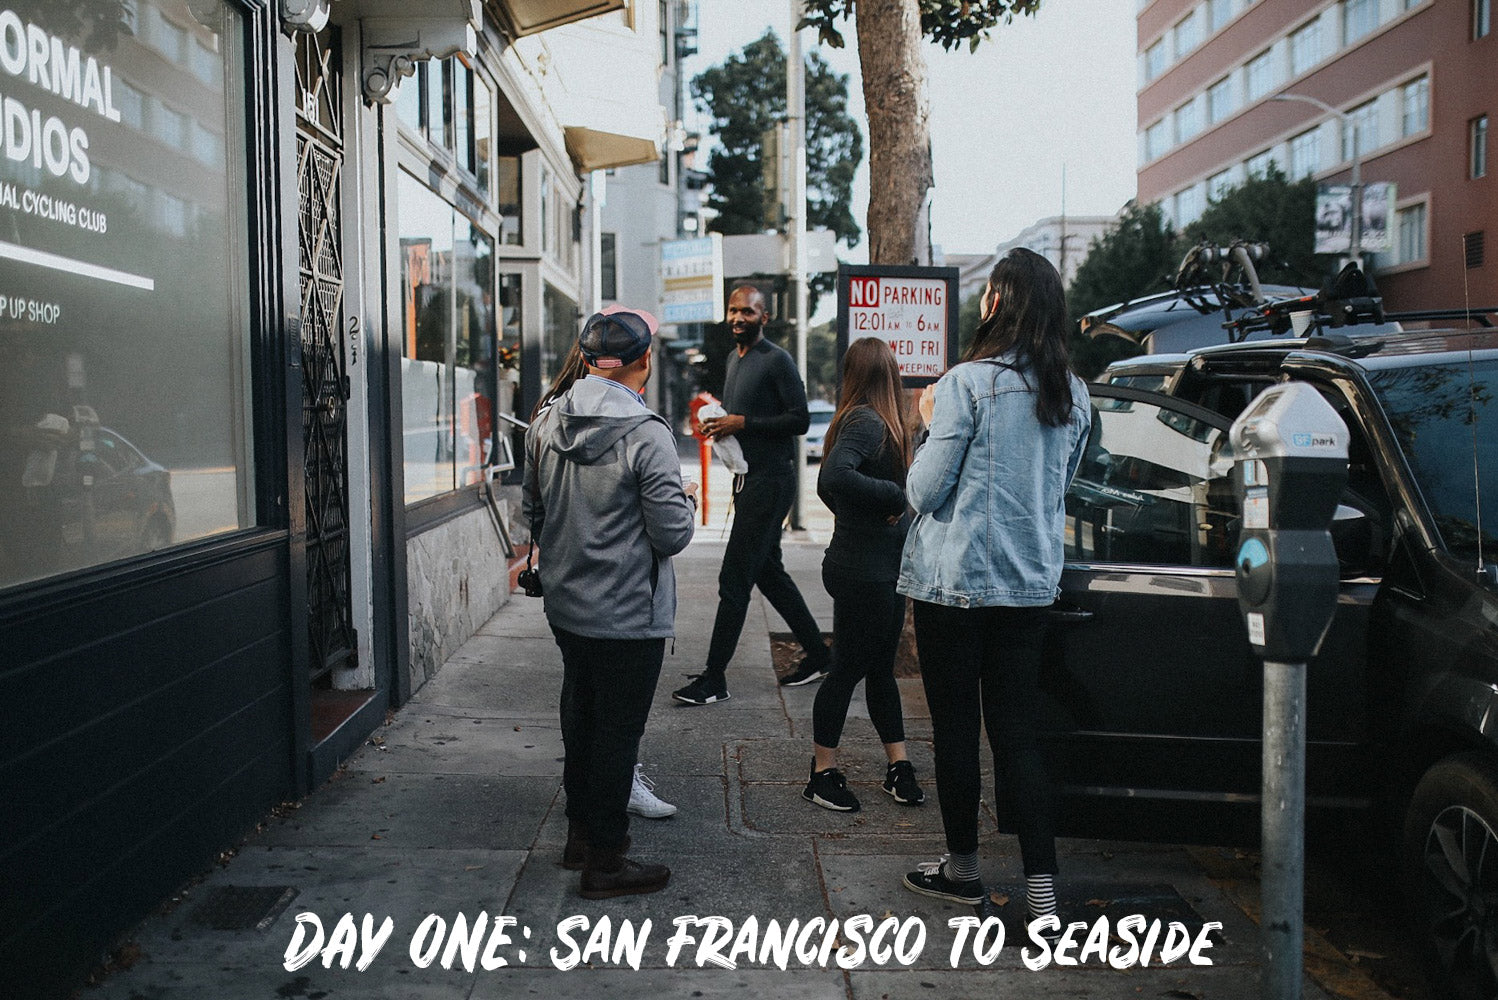 Day One: San Francisco to Seaside